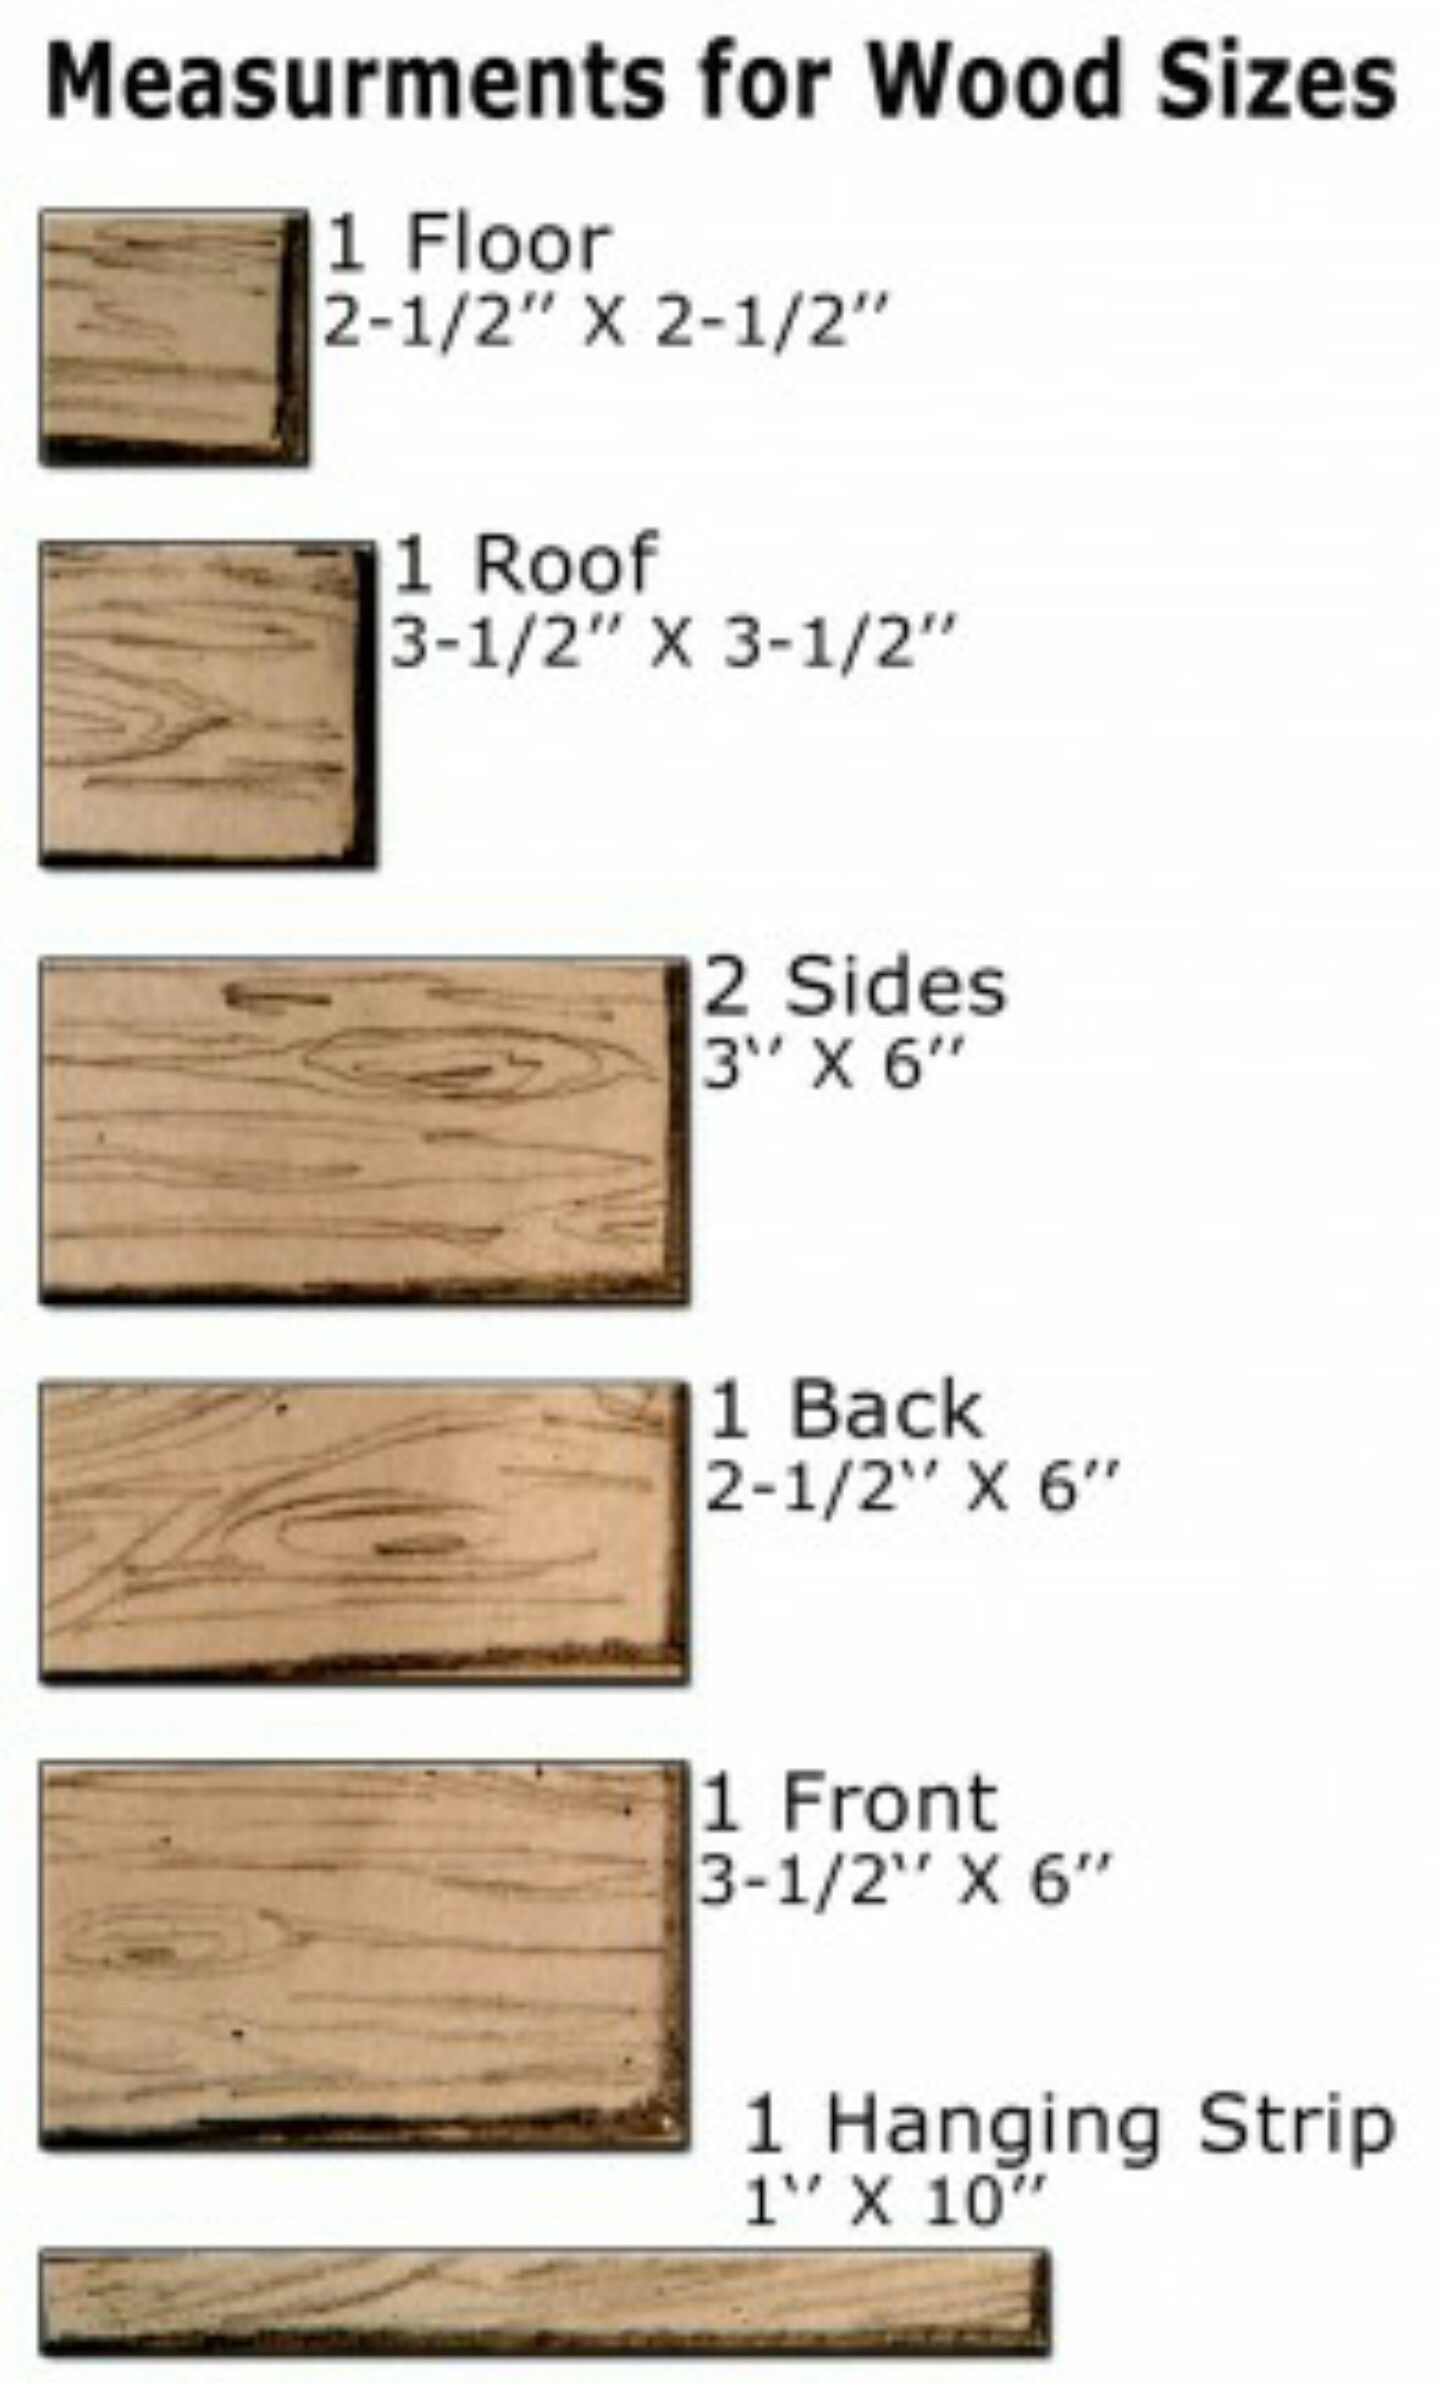 Wood Sizes And Purpose Wood Wood Sizes Wood Laminate Flooring